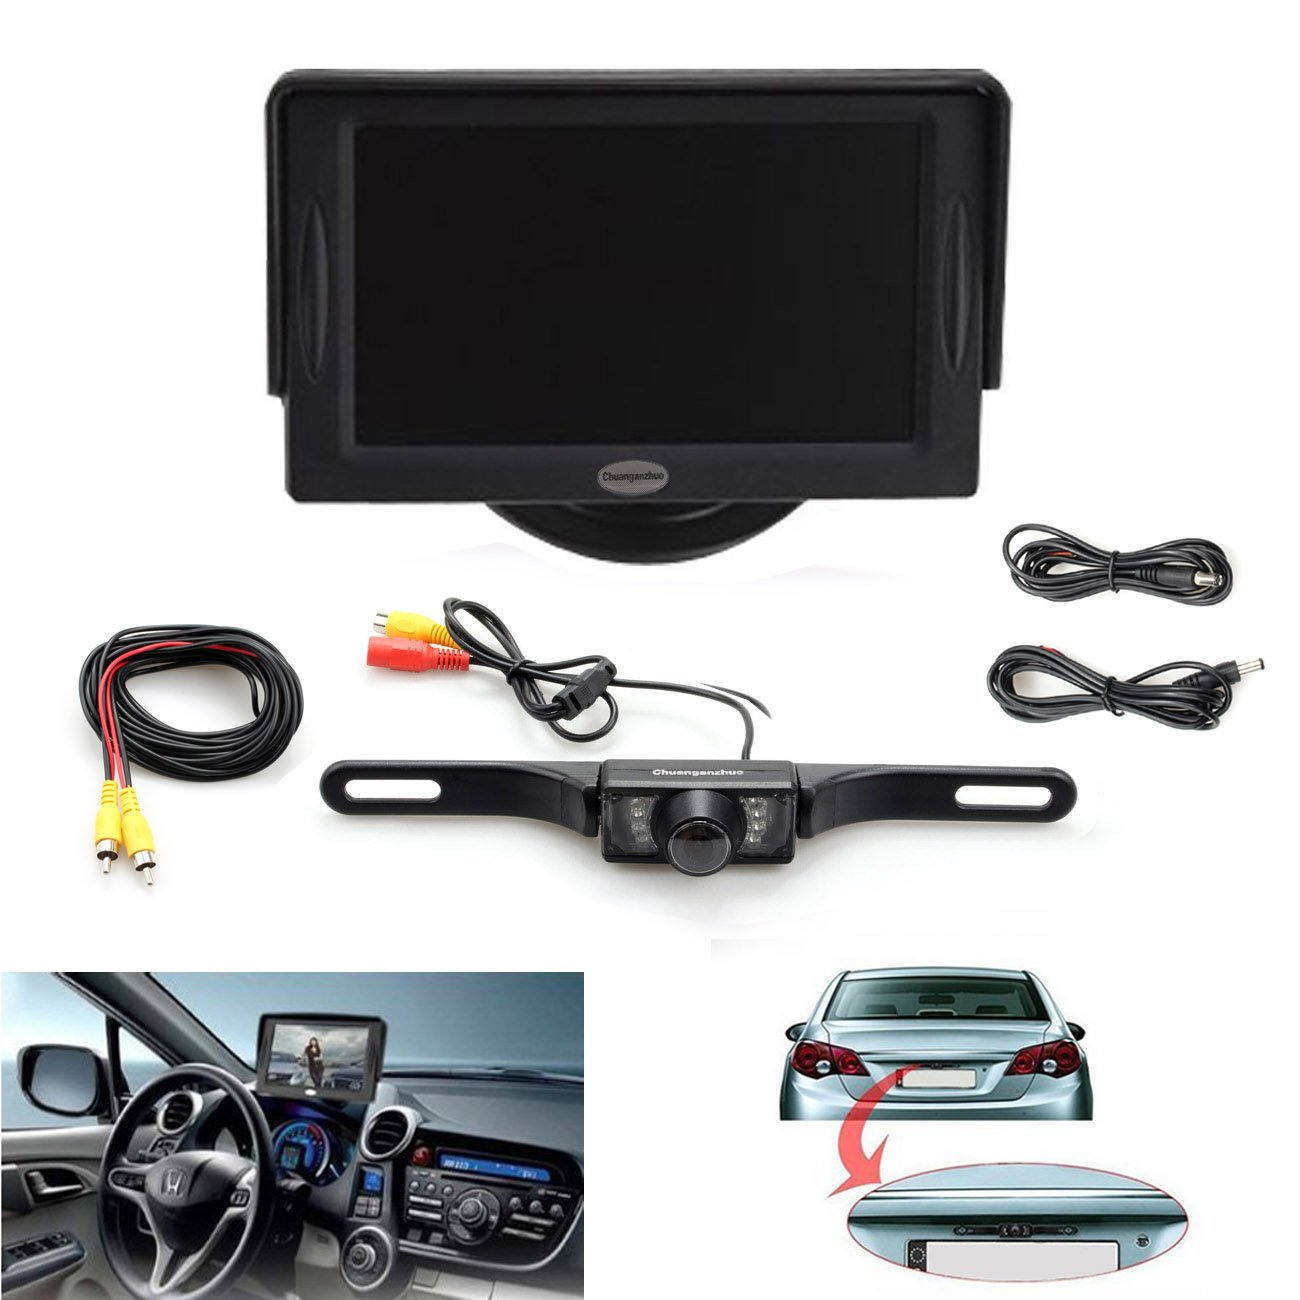 Backup Camera and Monitor Kit For Car,Universal Waterproof Rear-view License Plate Car Rear Backup Parking Camera + 4.3 TFT LCD Rear View Monitor Screen huong movie figure 26 cm playarts kai star wars darth maul pvc action figure collectible model toy